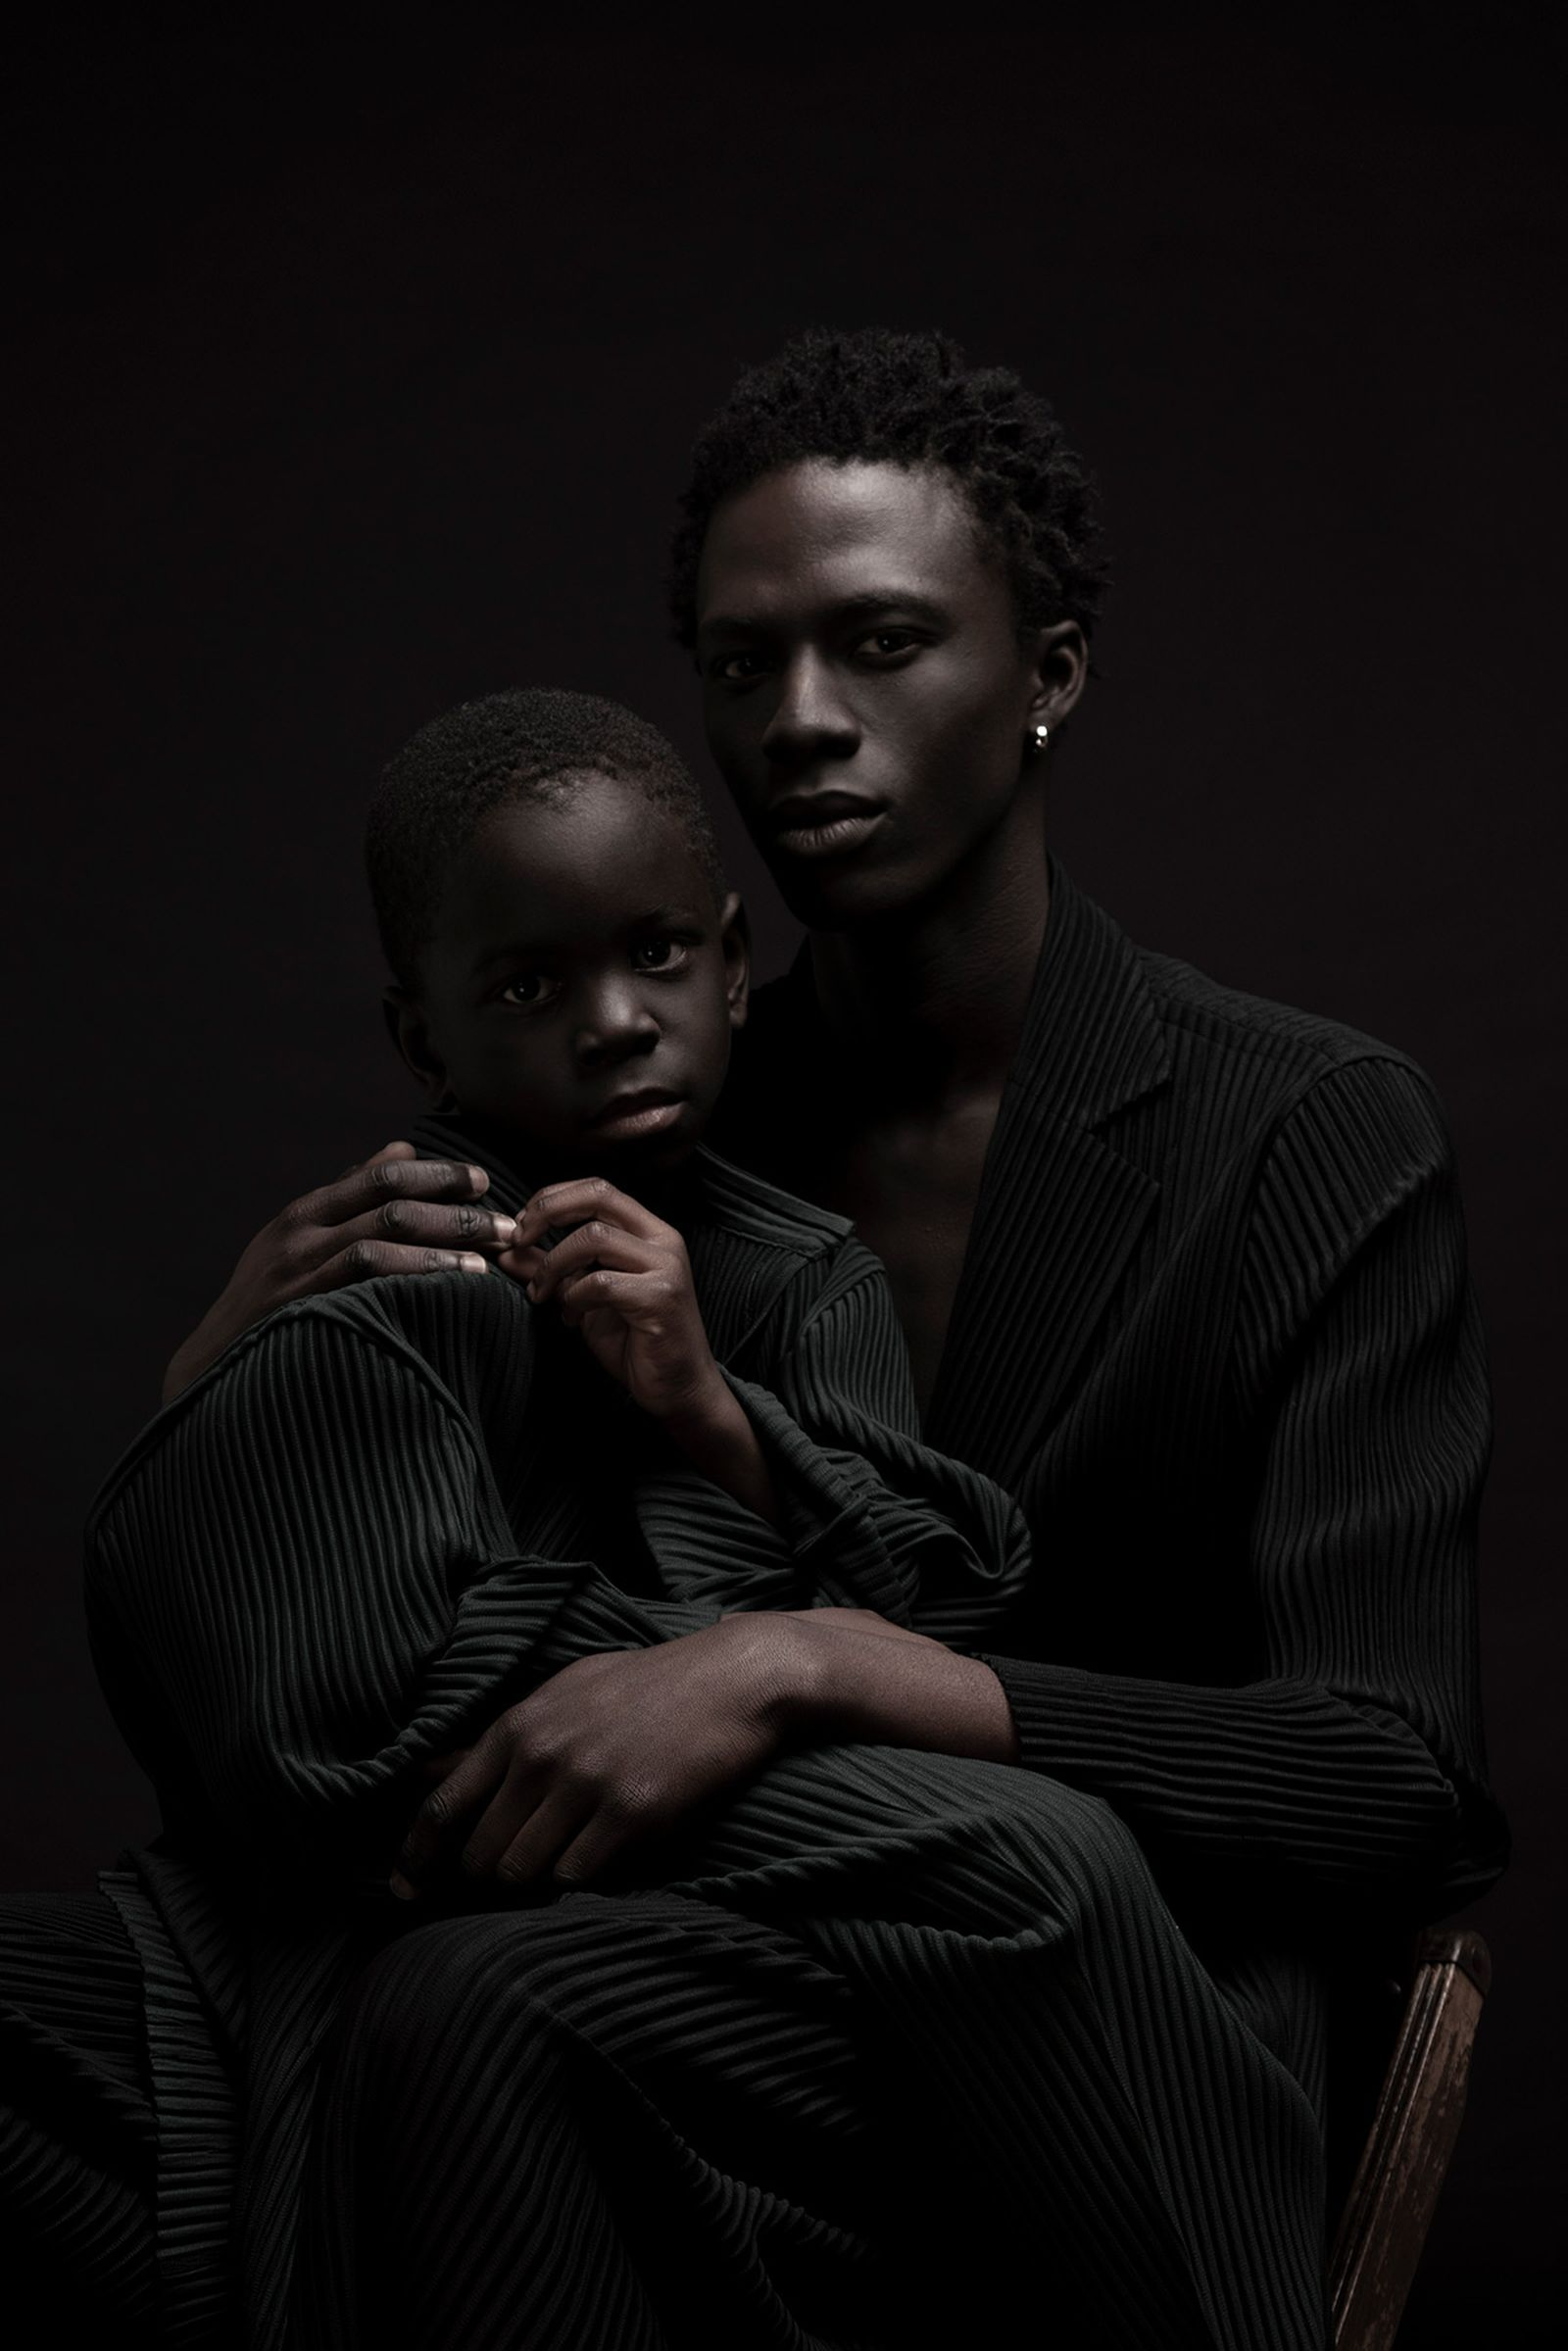 Cherif and Cheritha are wearing Full Looks - Homme Plissé Issey Miyake